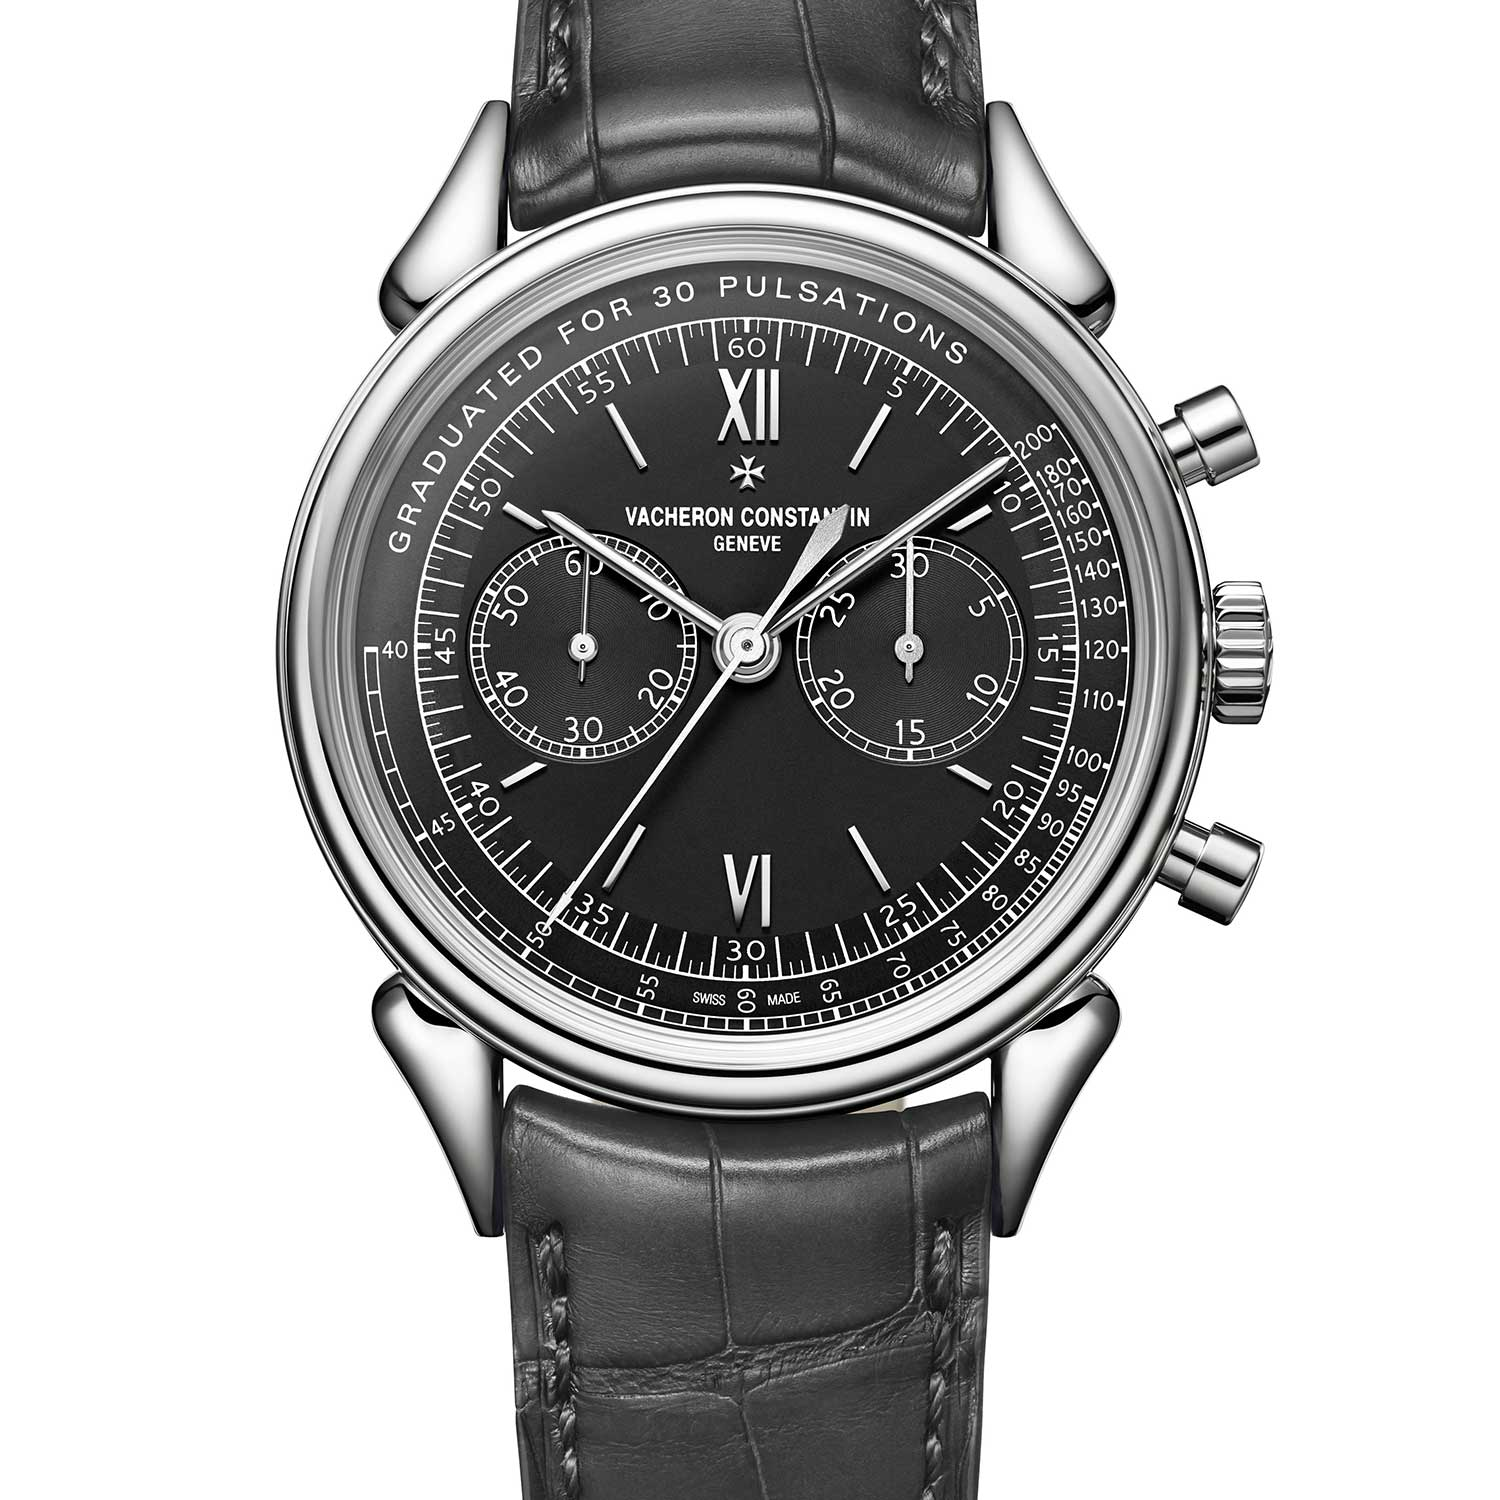 Vacheron Constantin Historiques Cornes de vache 1955 ref. 5000H/000A was a limited edition of 36 pieces made for Hodinkee in 2017, in stainless steel